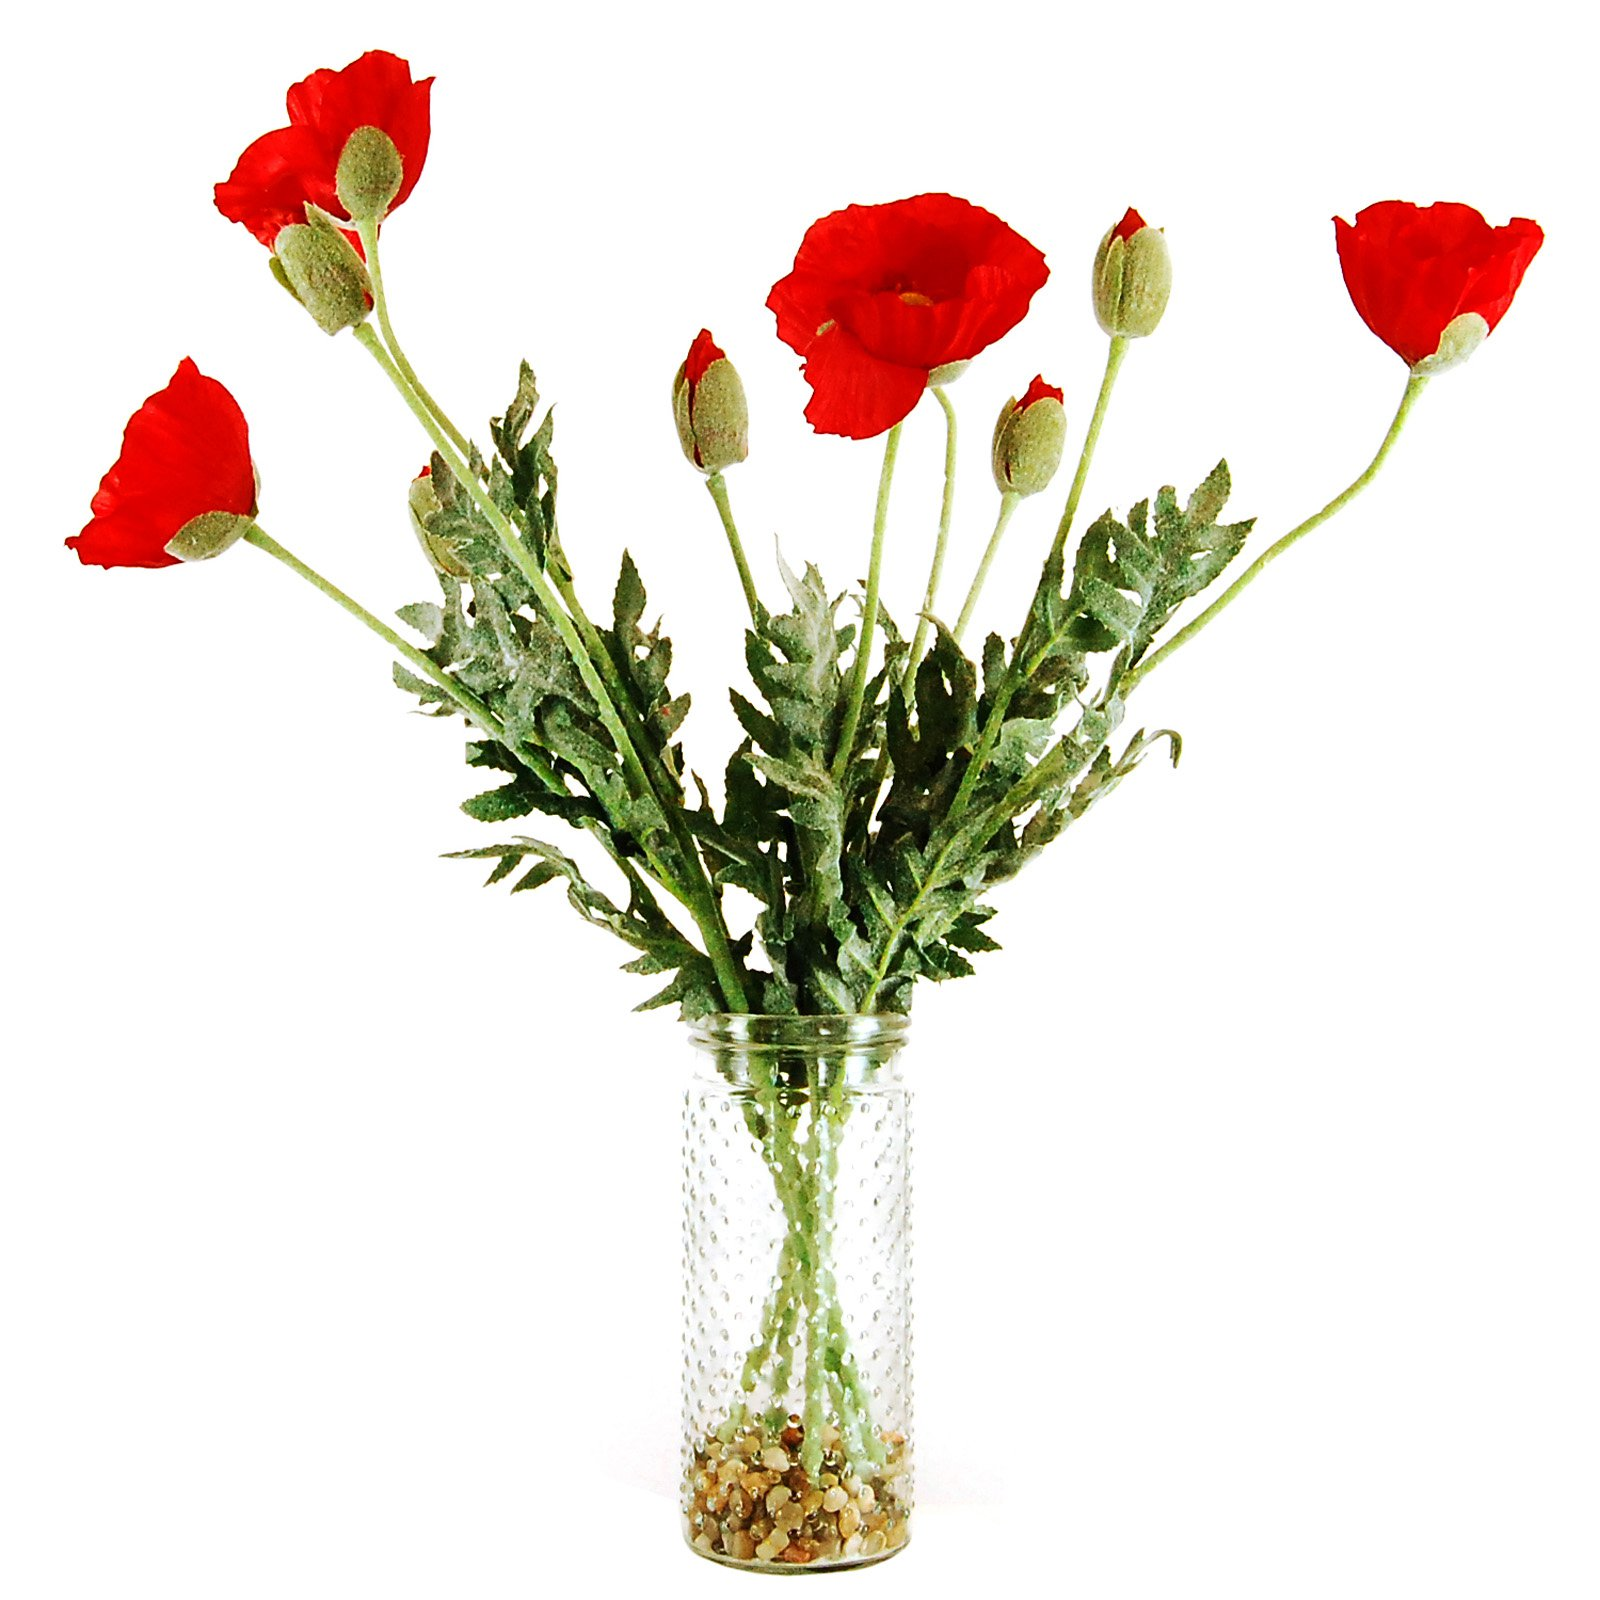 LCG Florals Poppies Silk Flowers with Hobnail Glass Jar